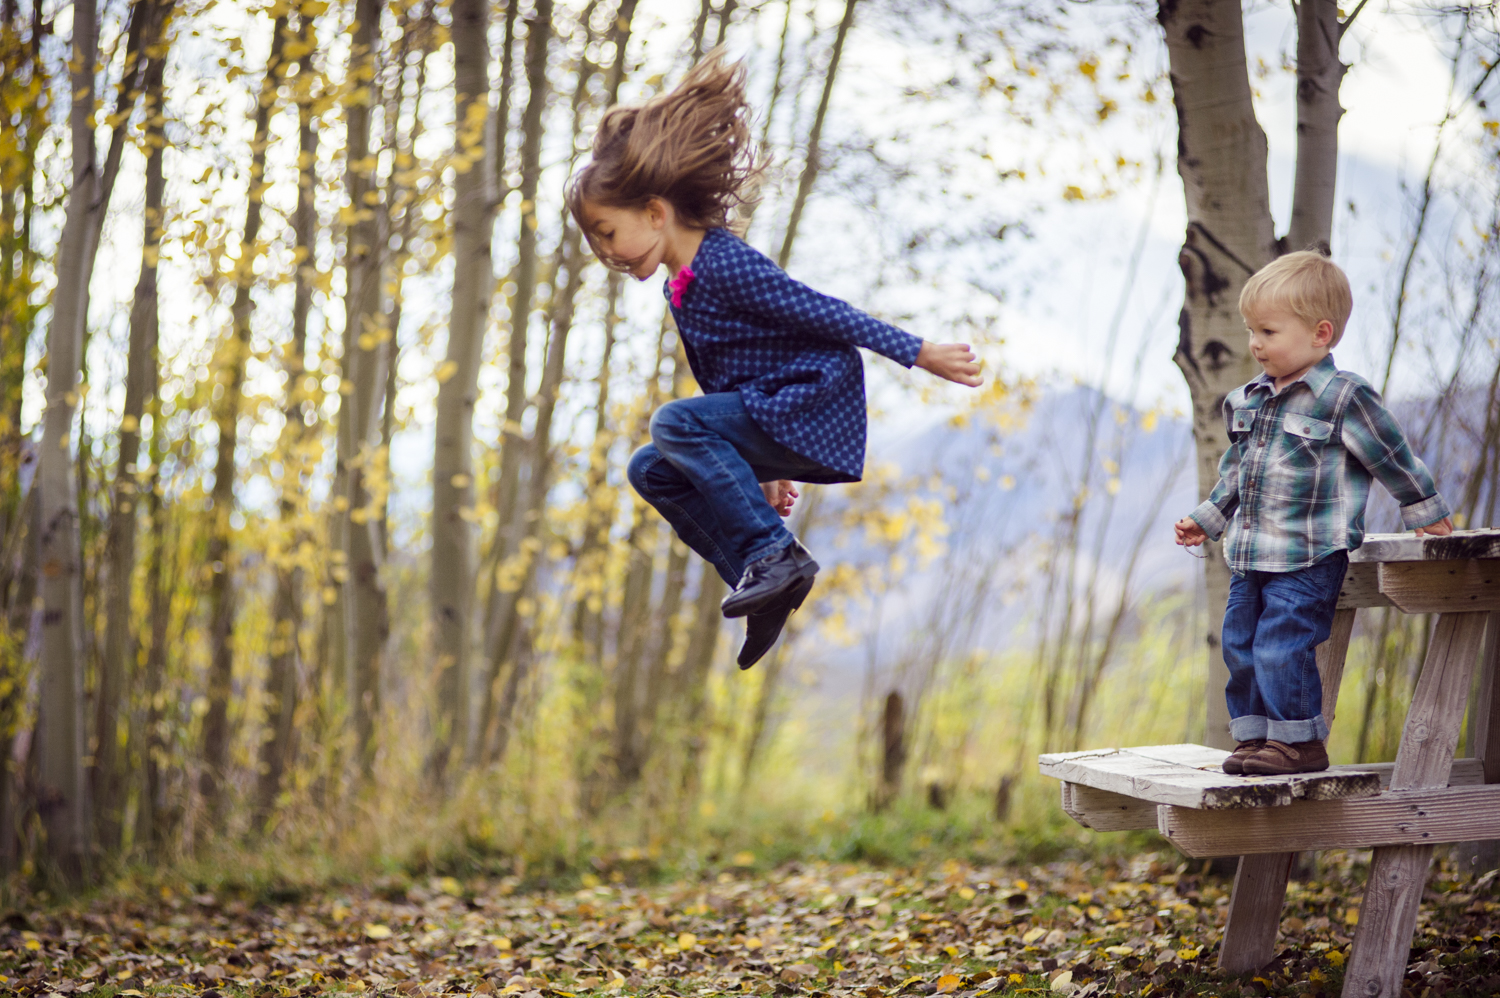 fall_lifestyle_family_leaves_candid_playing-001.jpg